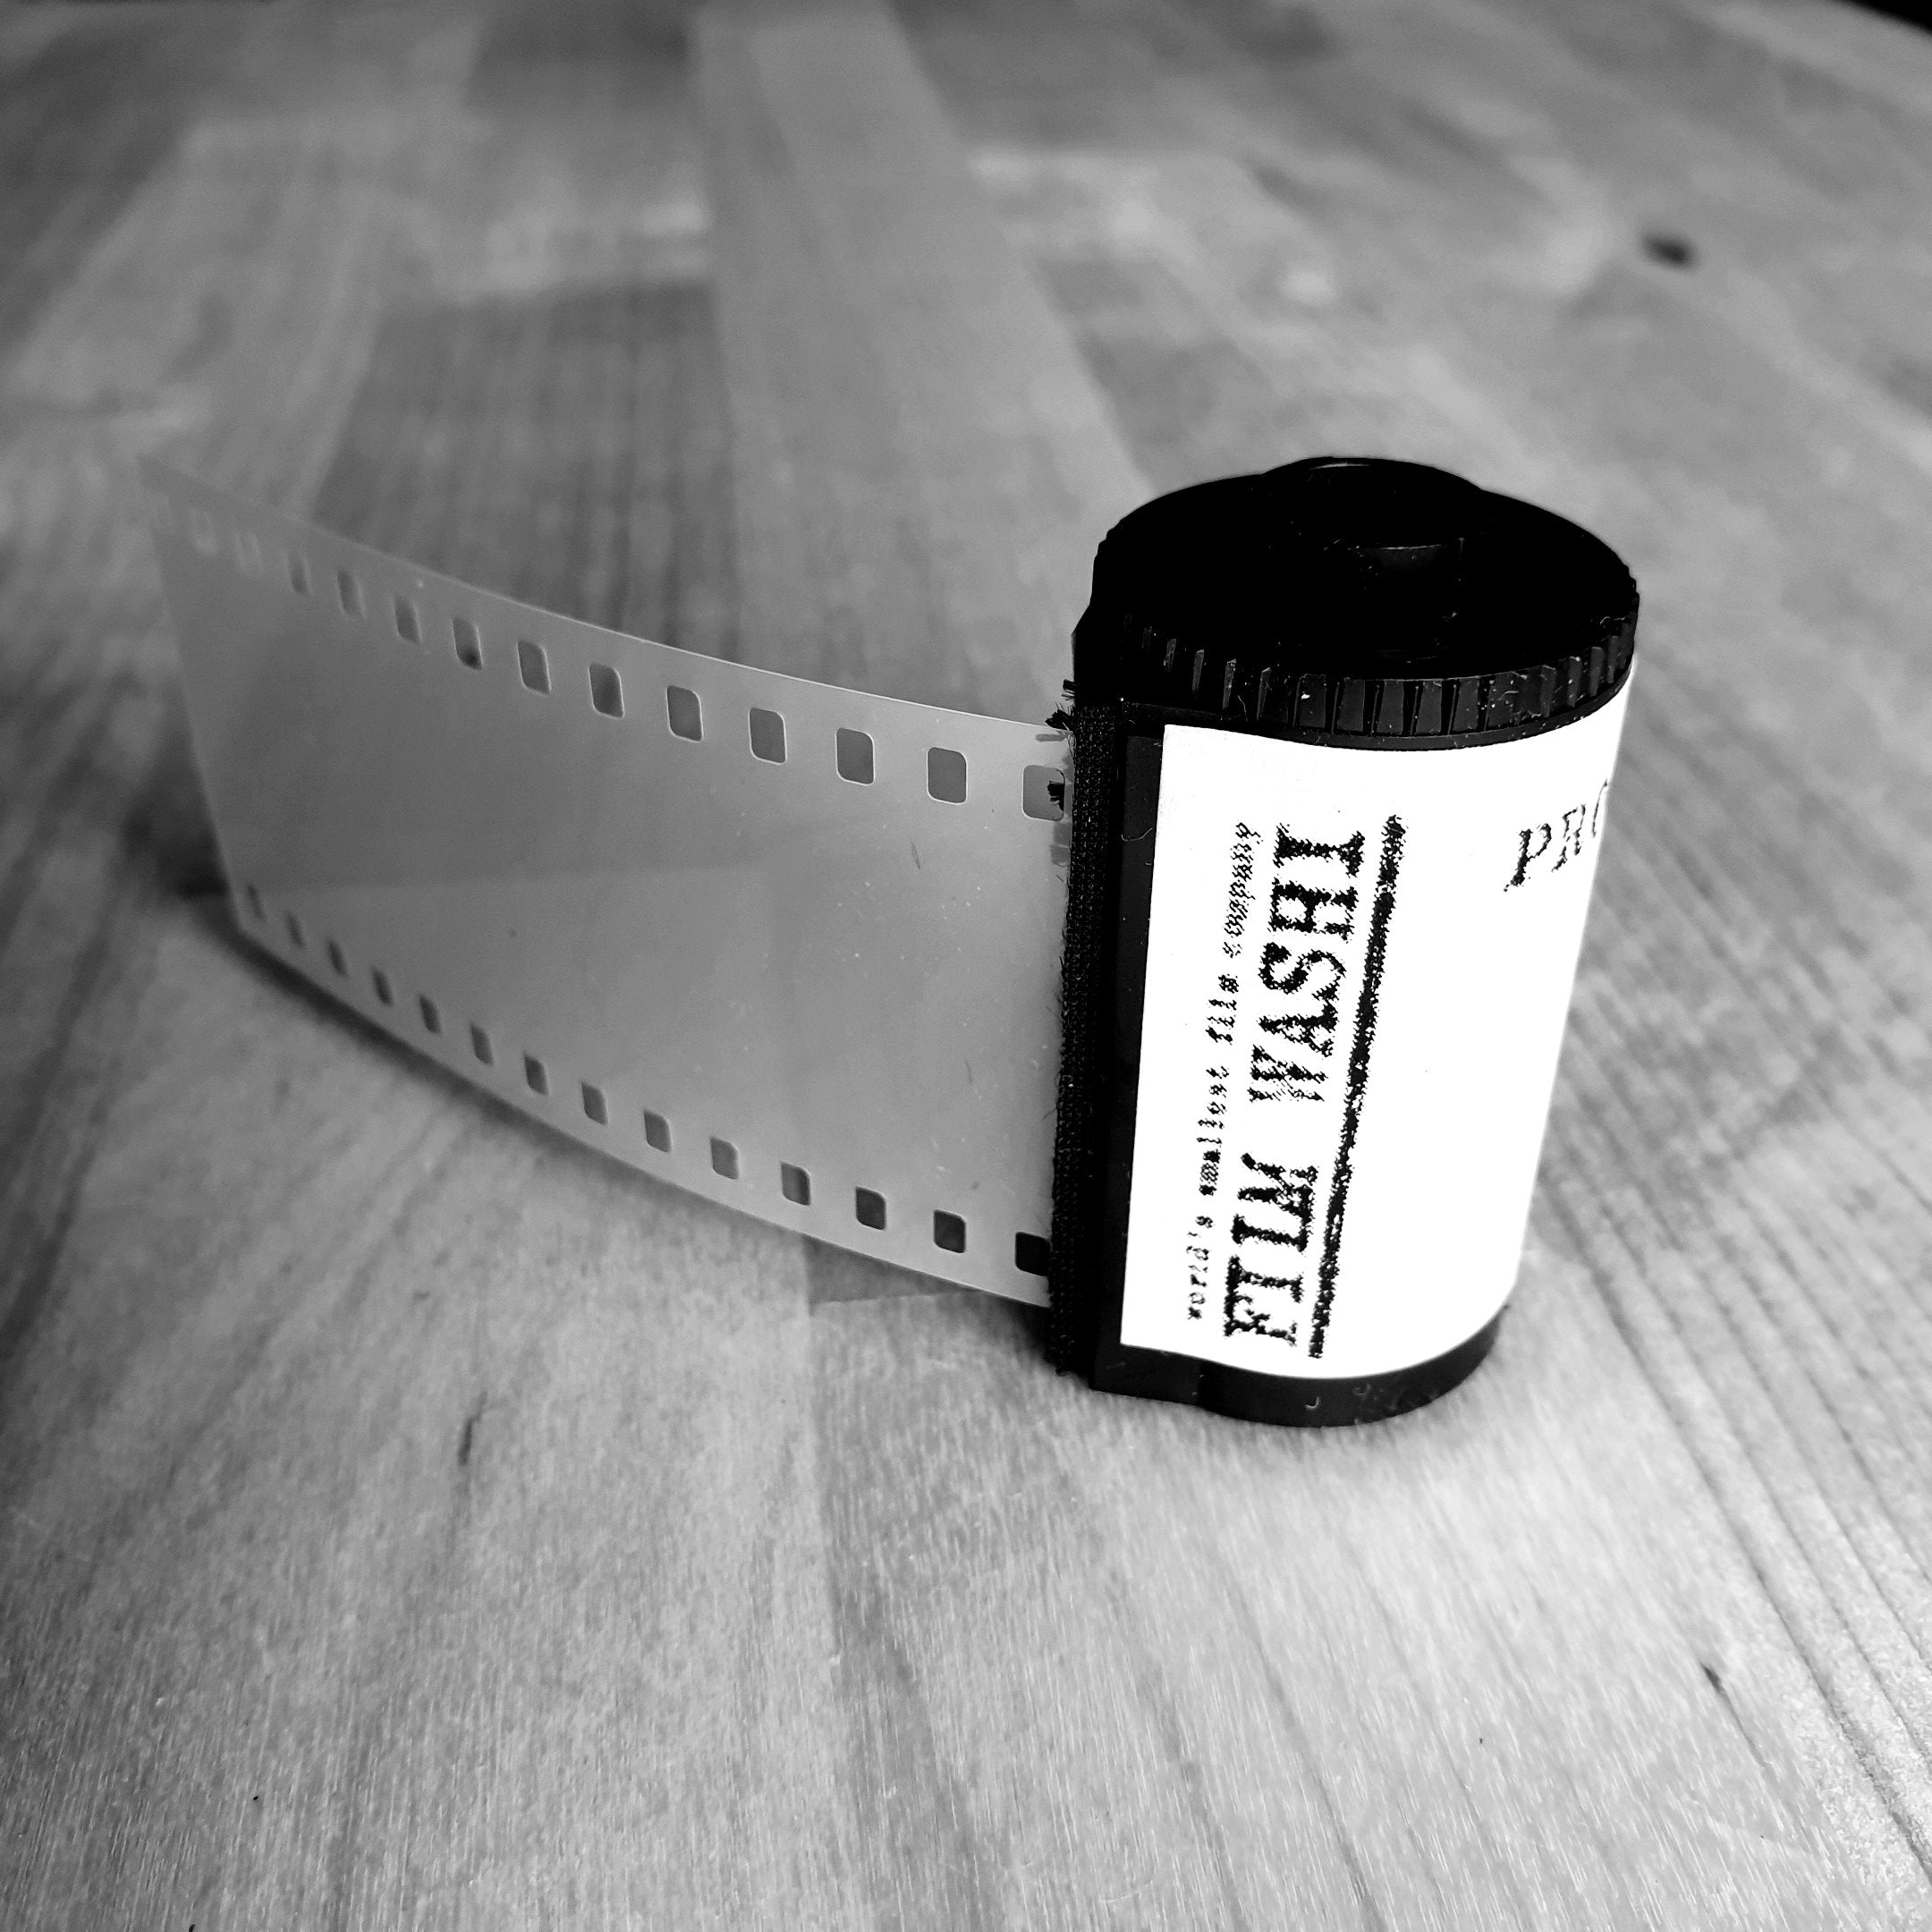 Film Washi Special film processing leader for 135 paper film - Greenwich Cameras and Film